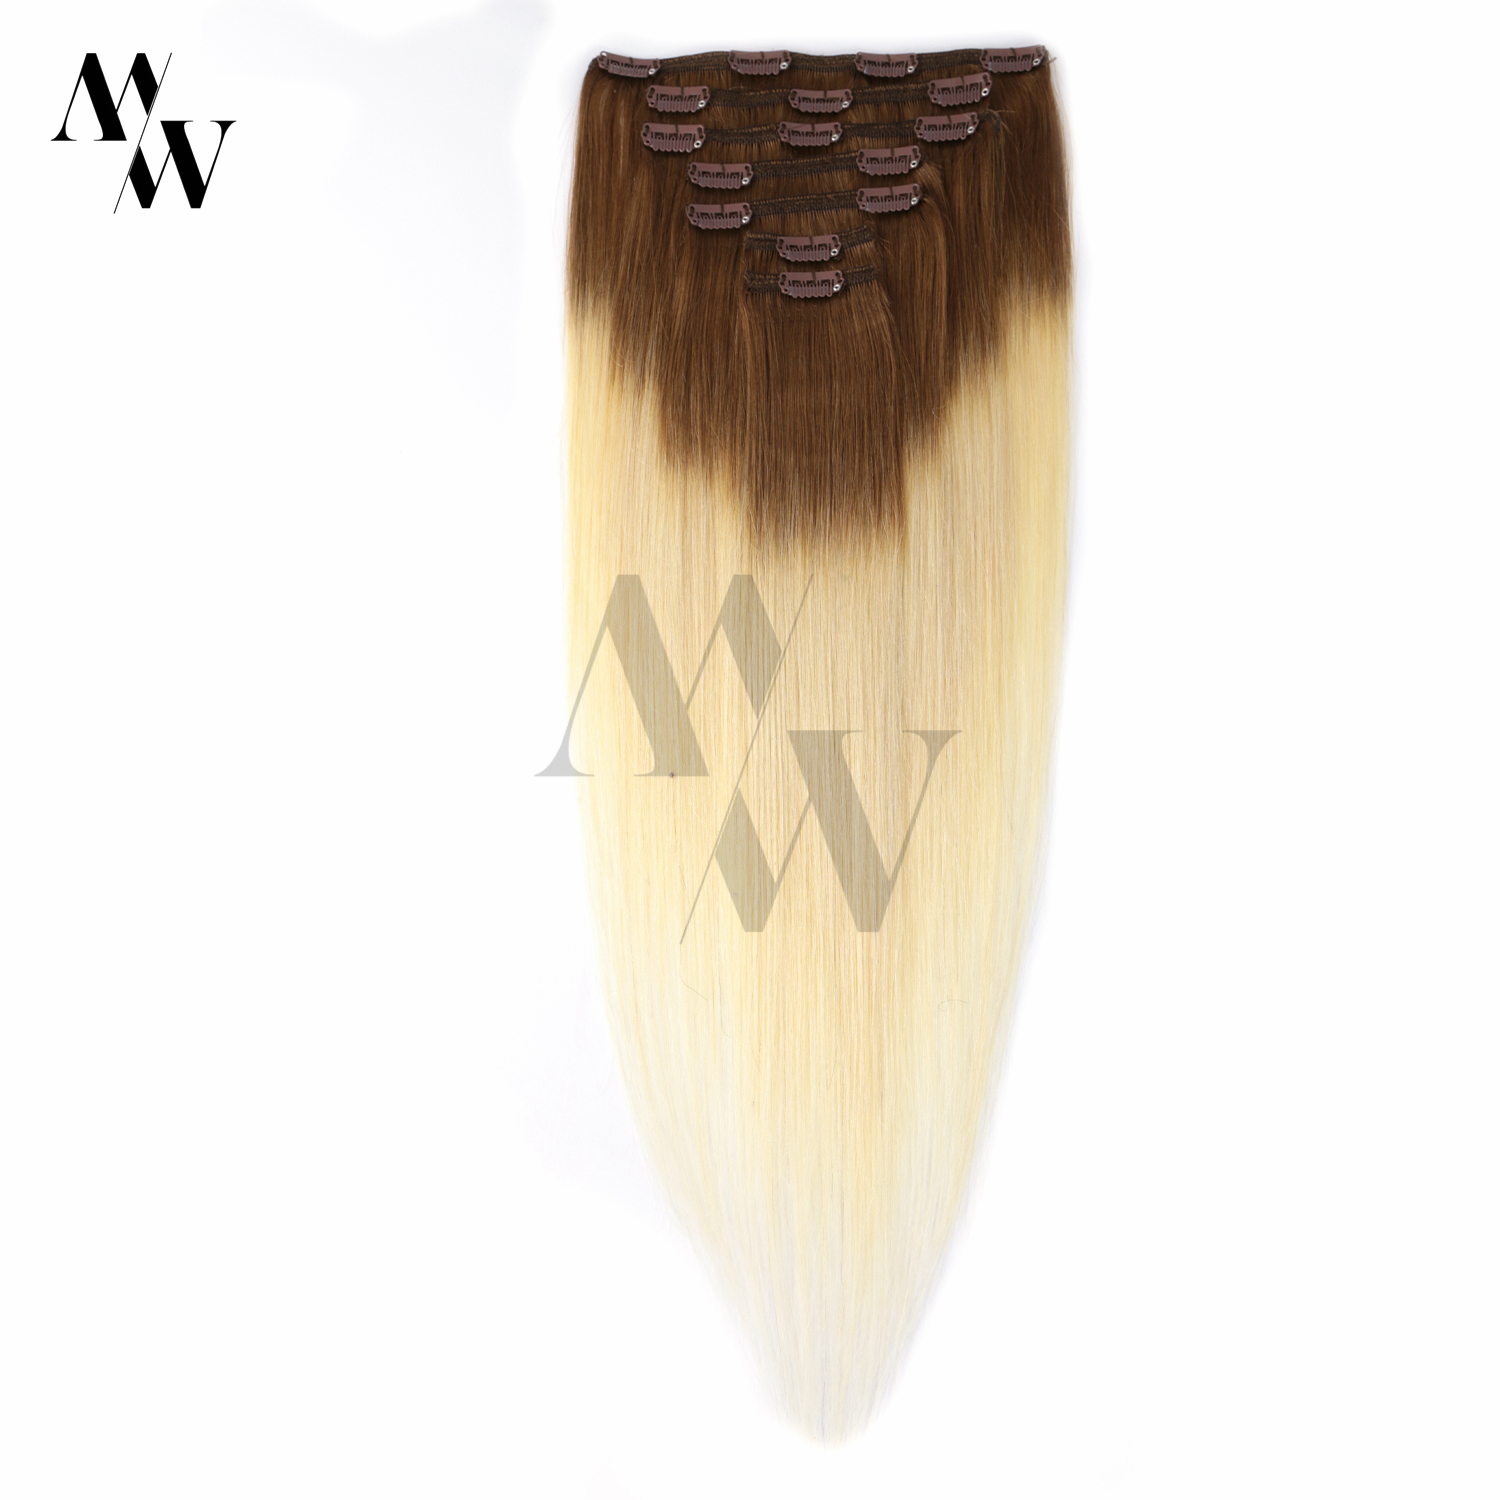 MW Highlight Hair Extensions Clip In Human Hair Machine Remy Real Hidden Ombre Clip On Hair With 16 Clips 20 Inches 100g/set